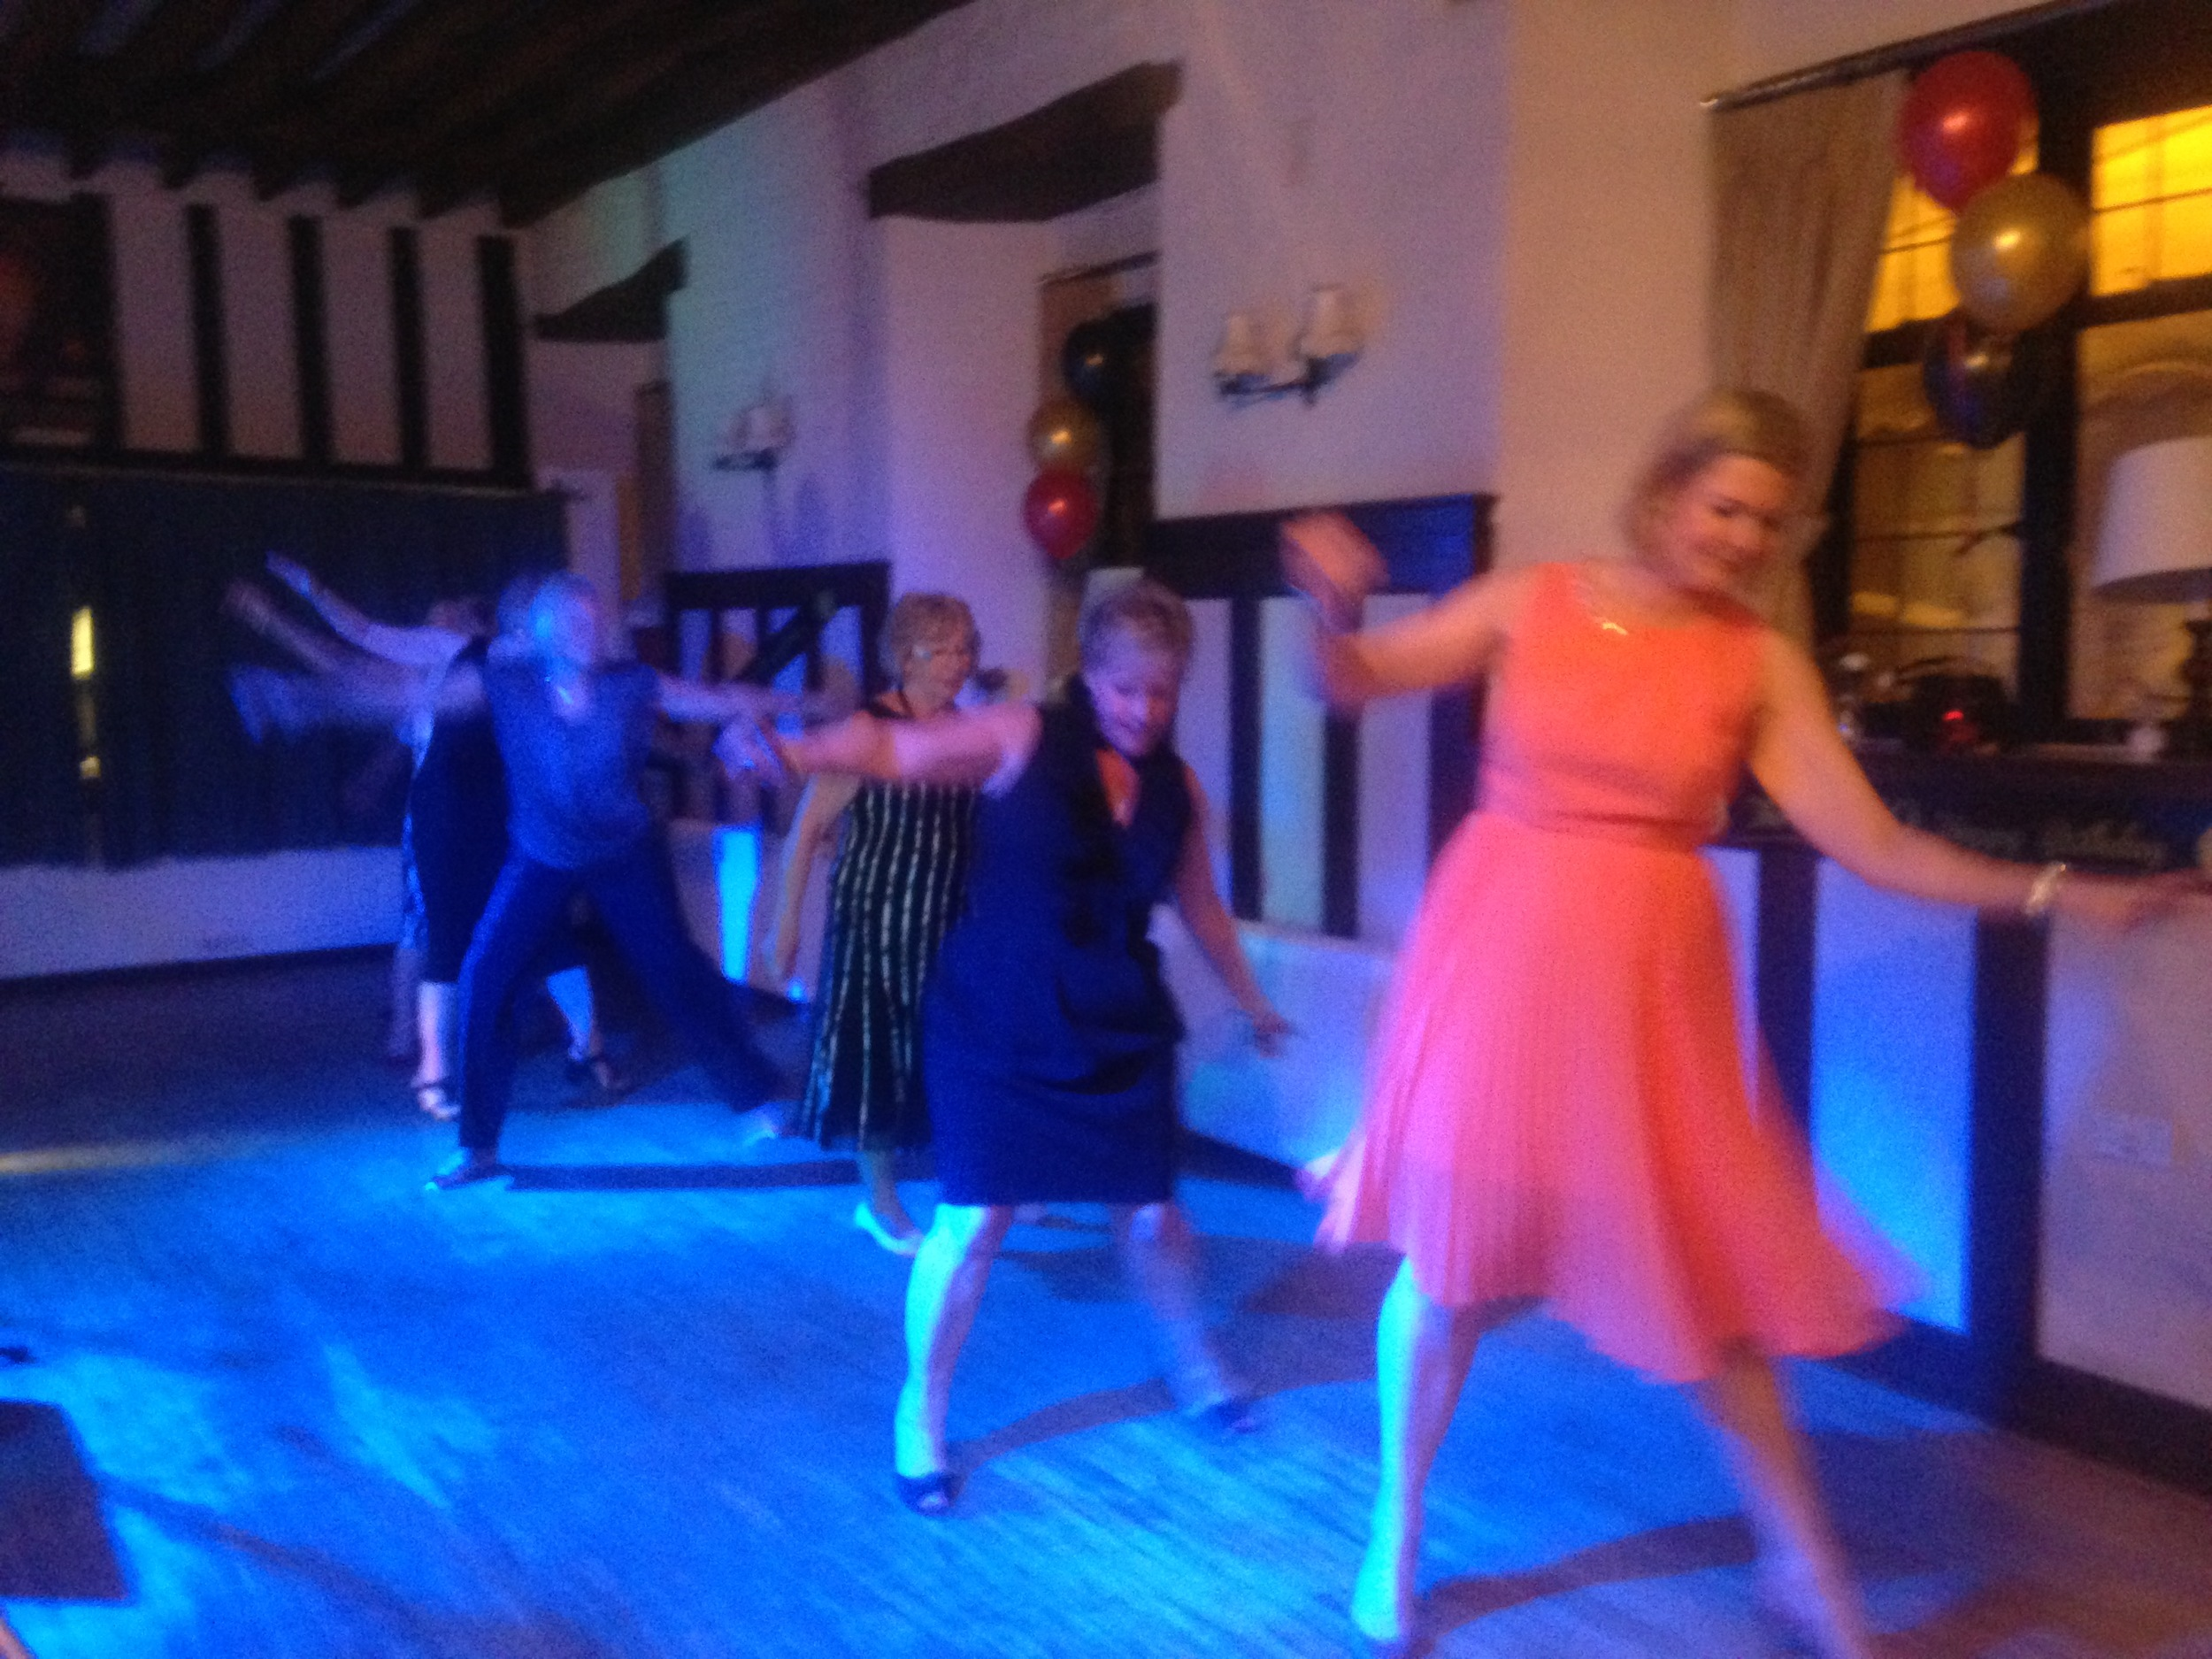 Line Dancing Ladies, to Blurred Lines @ Rochford Hundred Golf Club, Essex